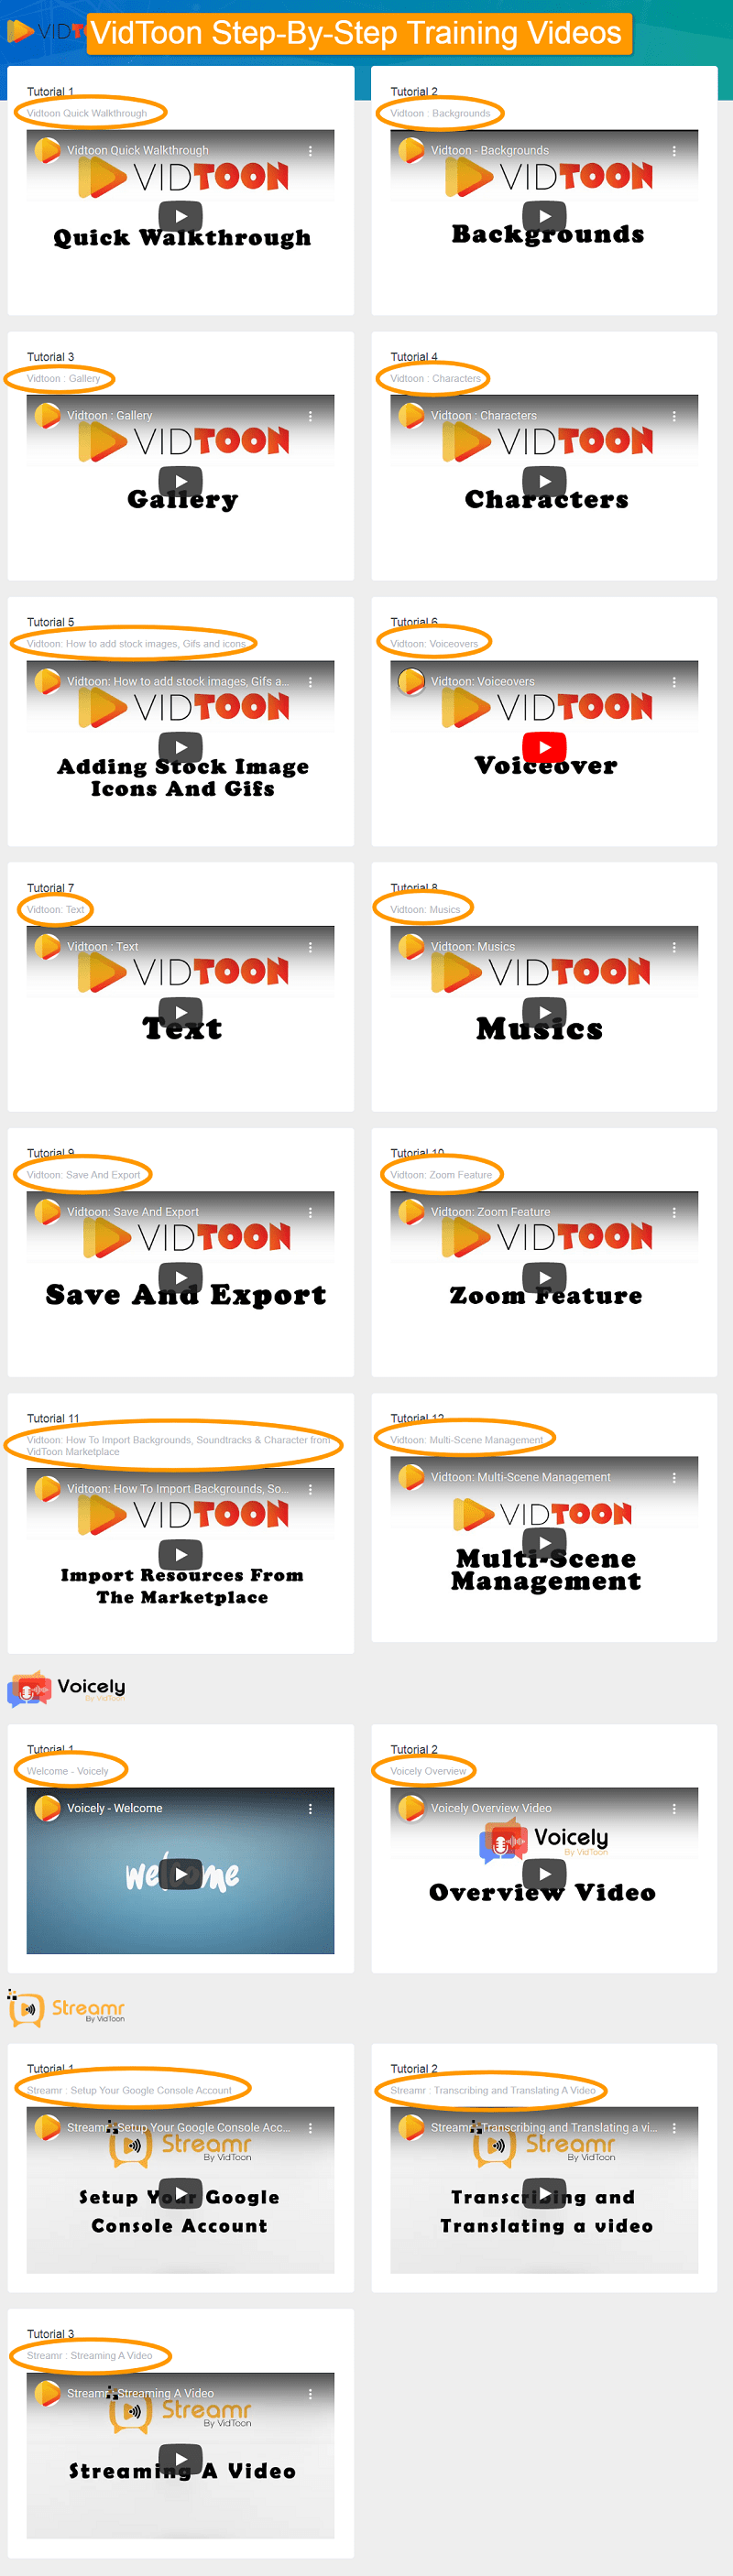 Vidtoon Training Videos